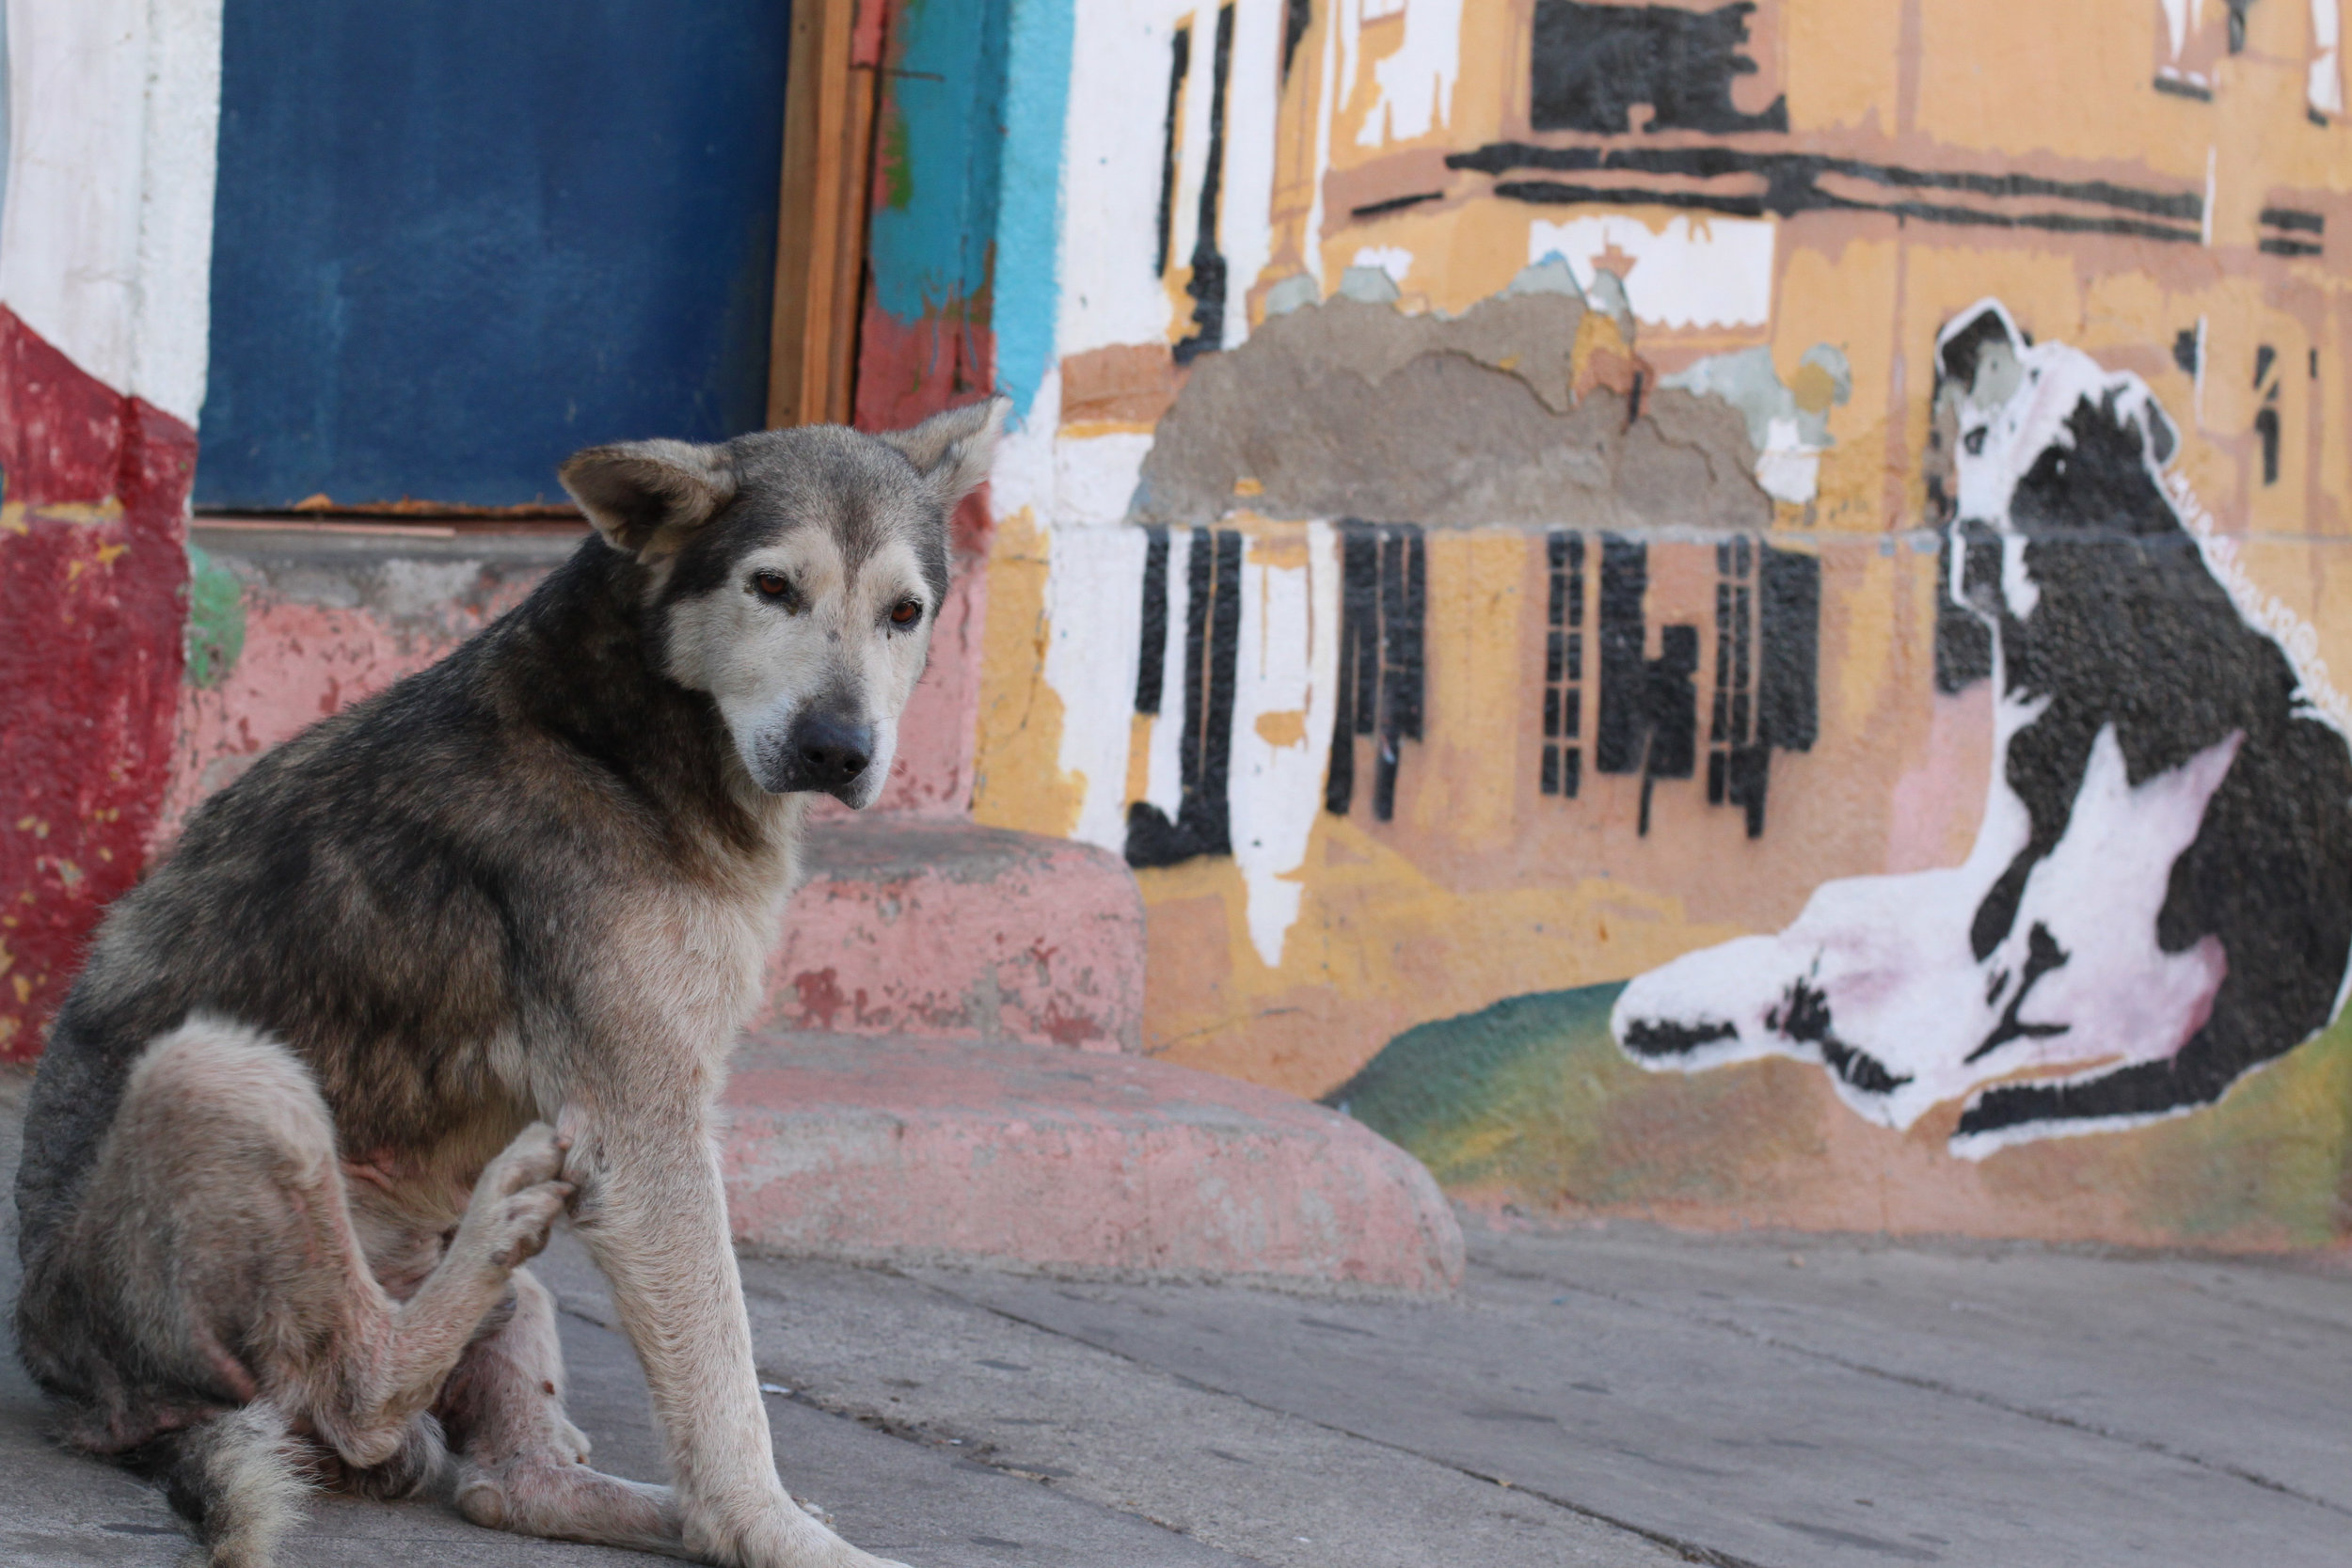 Dogs and art in Valparaiso, Chile.